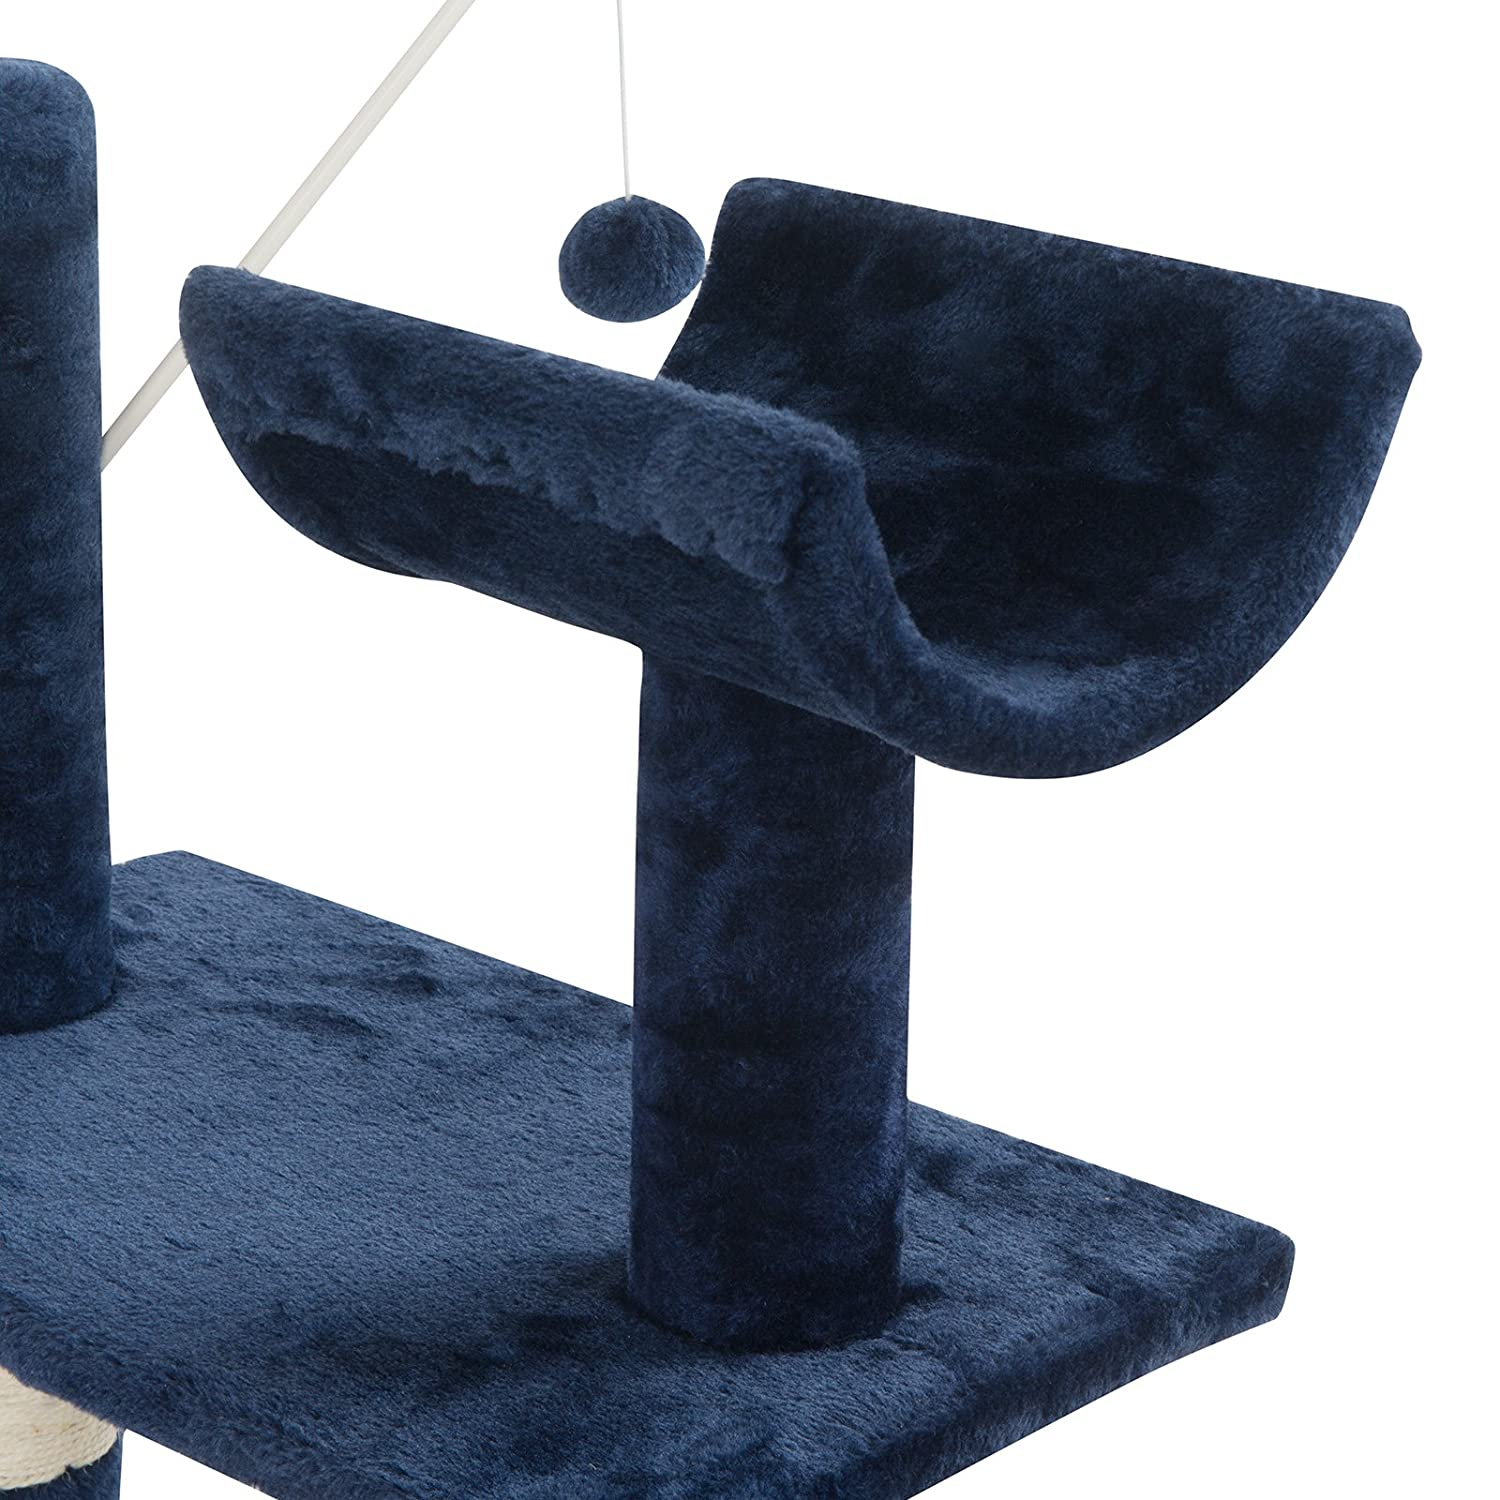 53.1//135 cm High Dark Blue Tammible Cat Activity Tree and Towers Condo Furniture Scratching Kitty Pet Play House with Stair